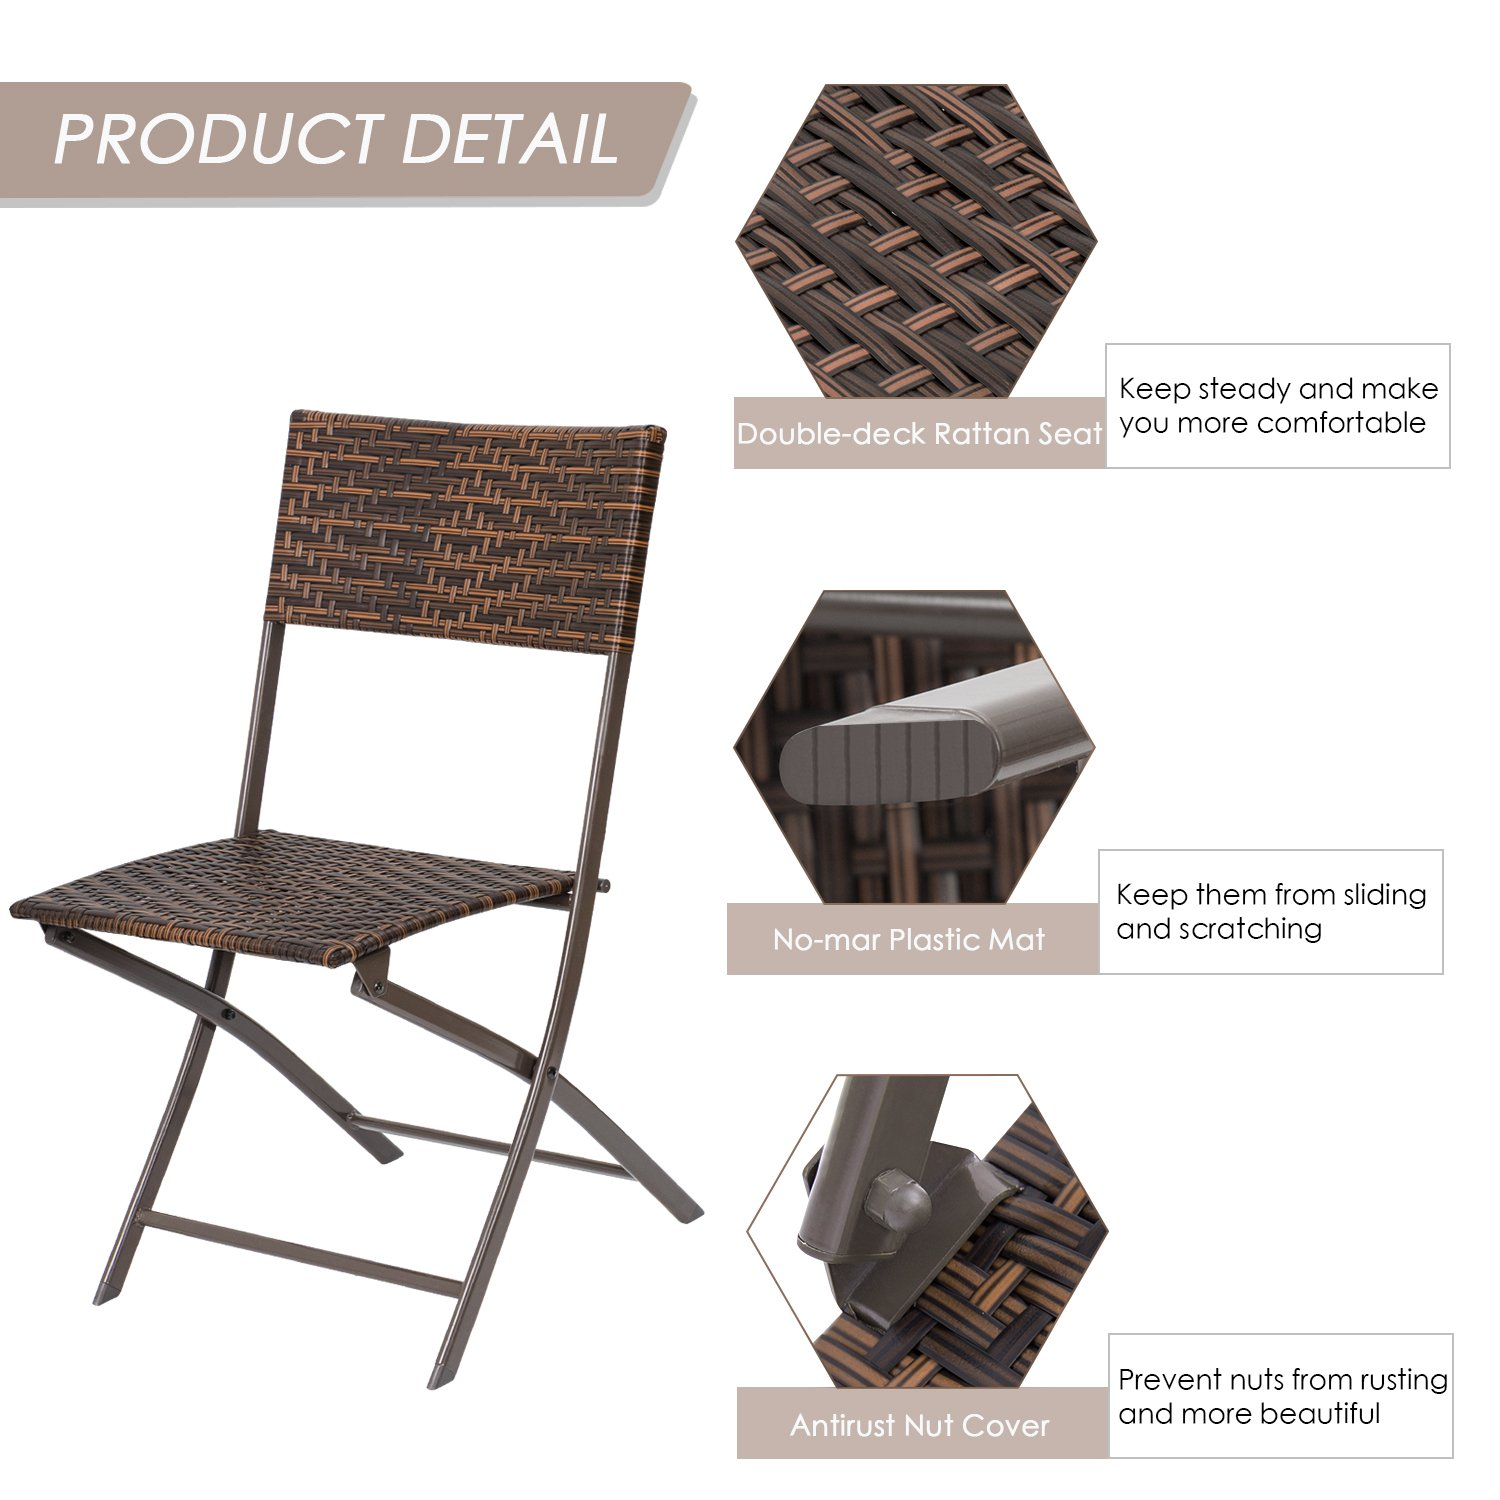 Flamaker Folding Patio Chairs PE Wicker Rattan Chair 4 Pieces Patio Furniture Set by Flamaker (Image #3)